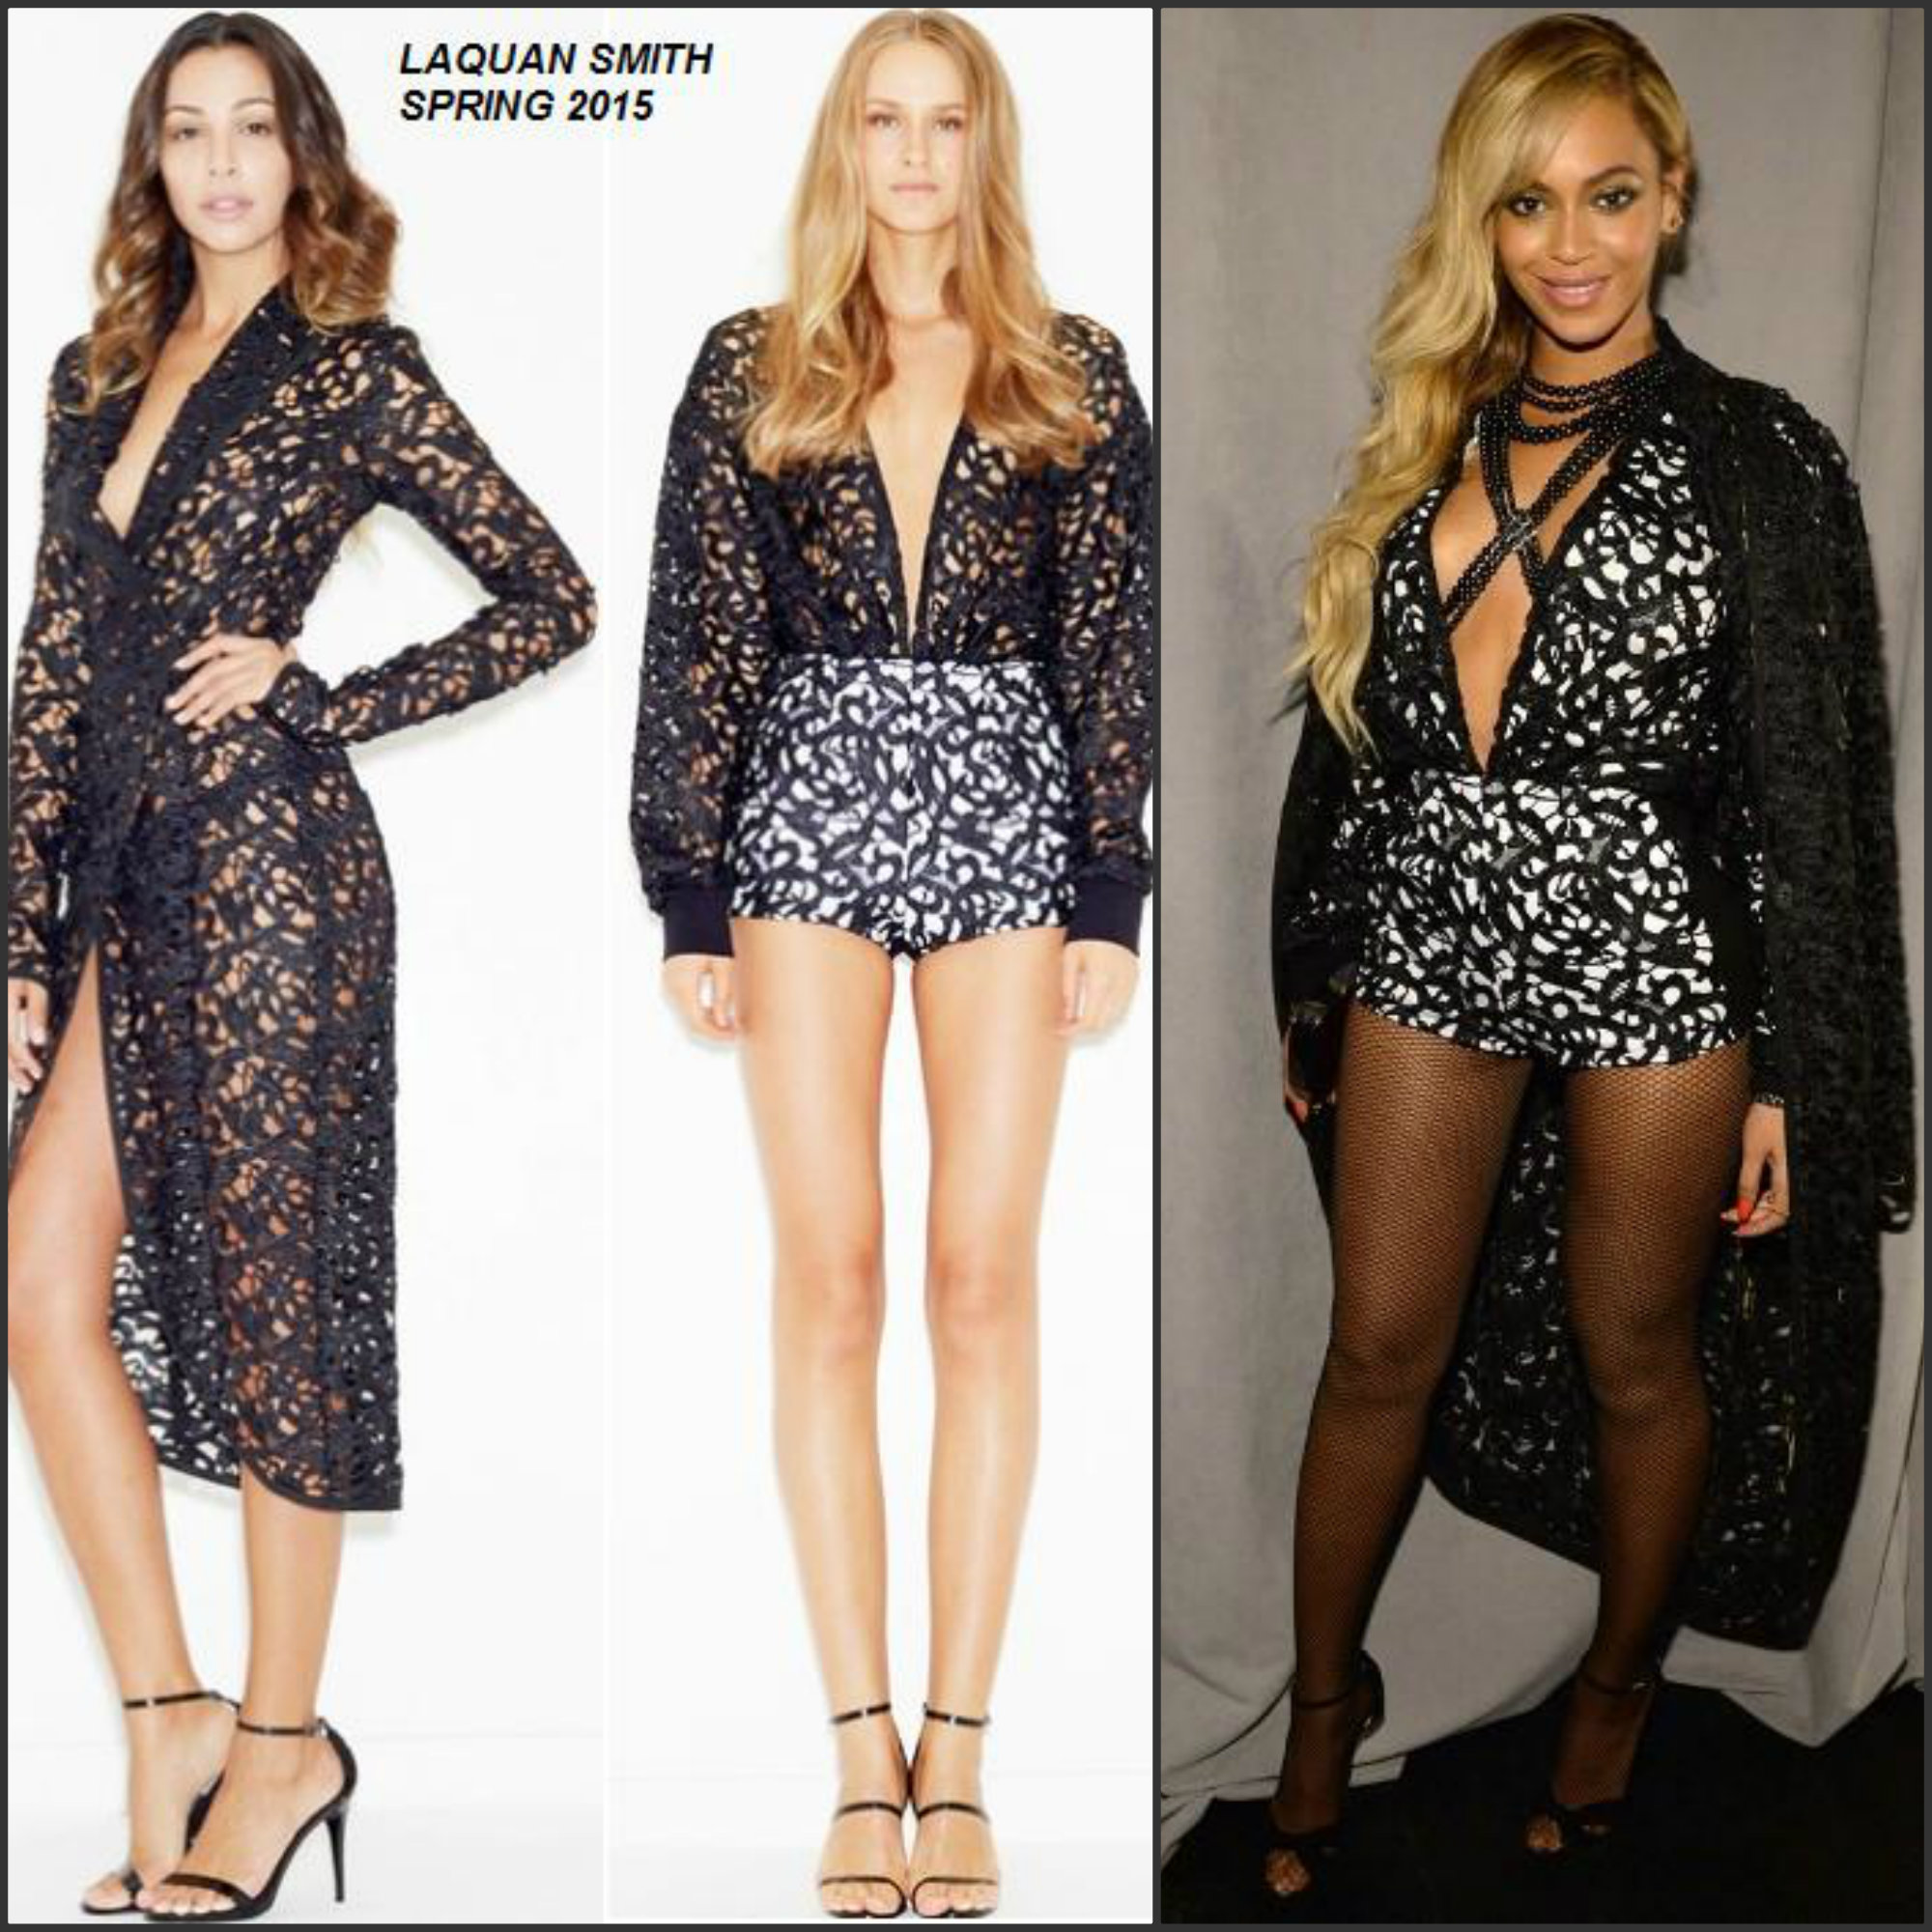 Beyonce-in-Laquan-Smith-at-the-Tidal-Launch-Event